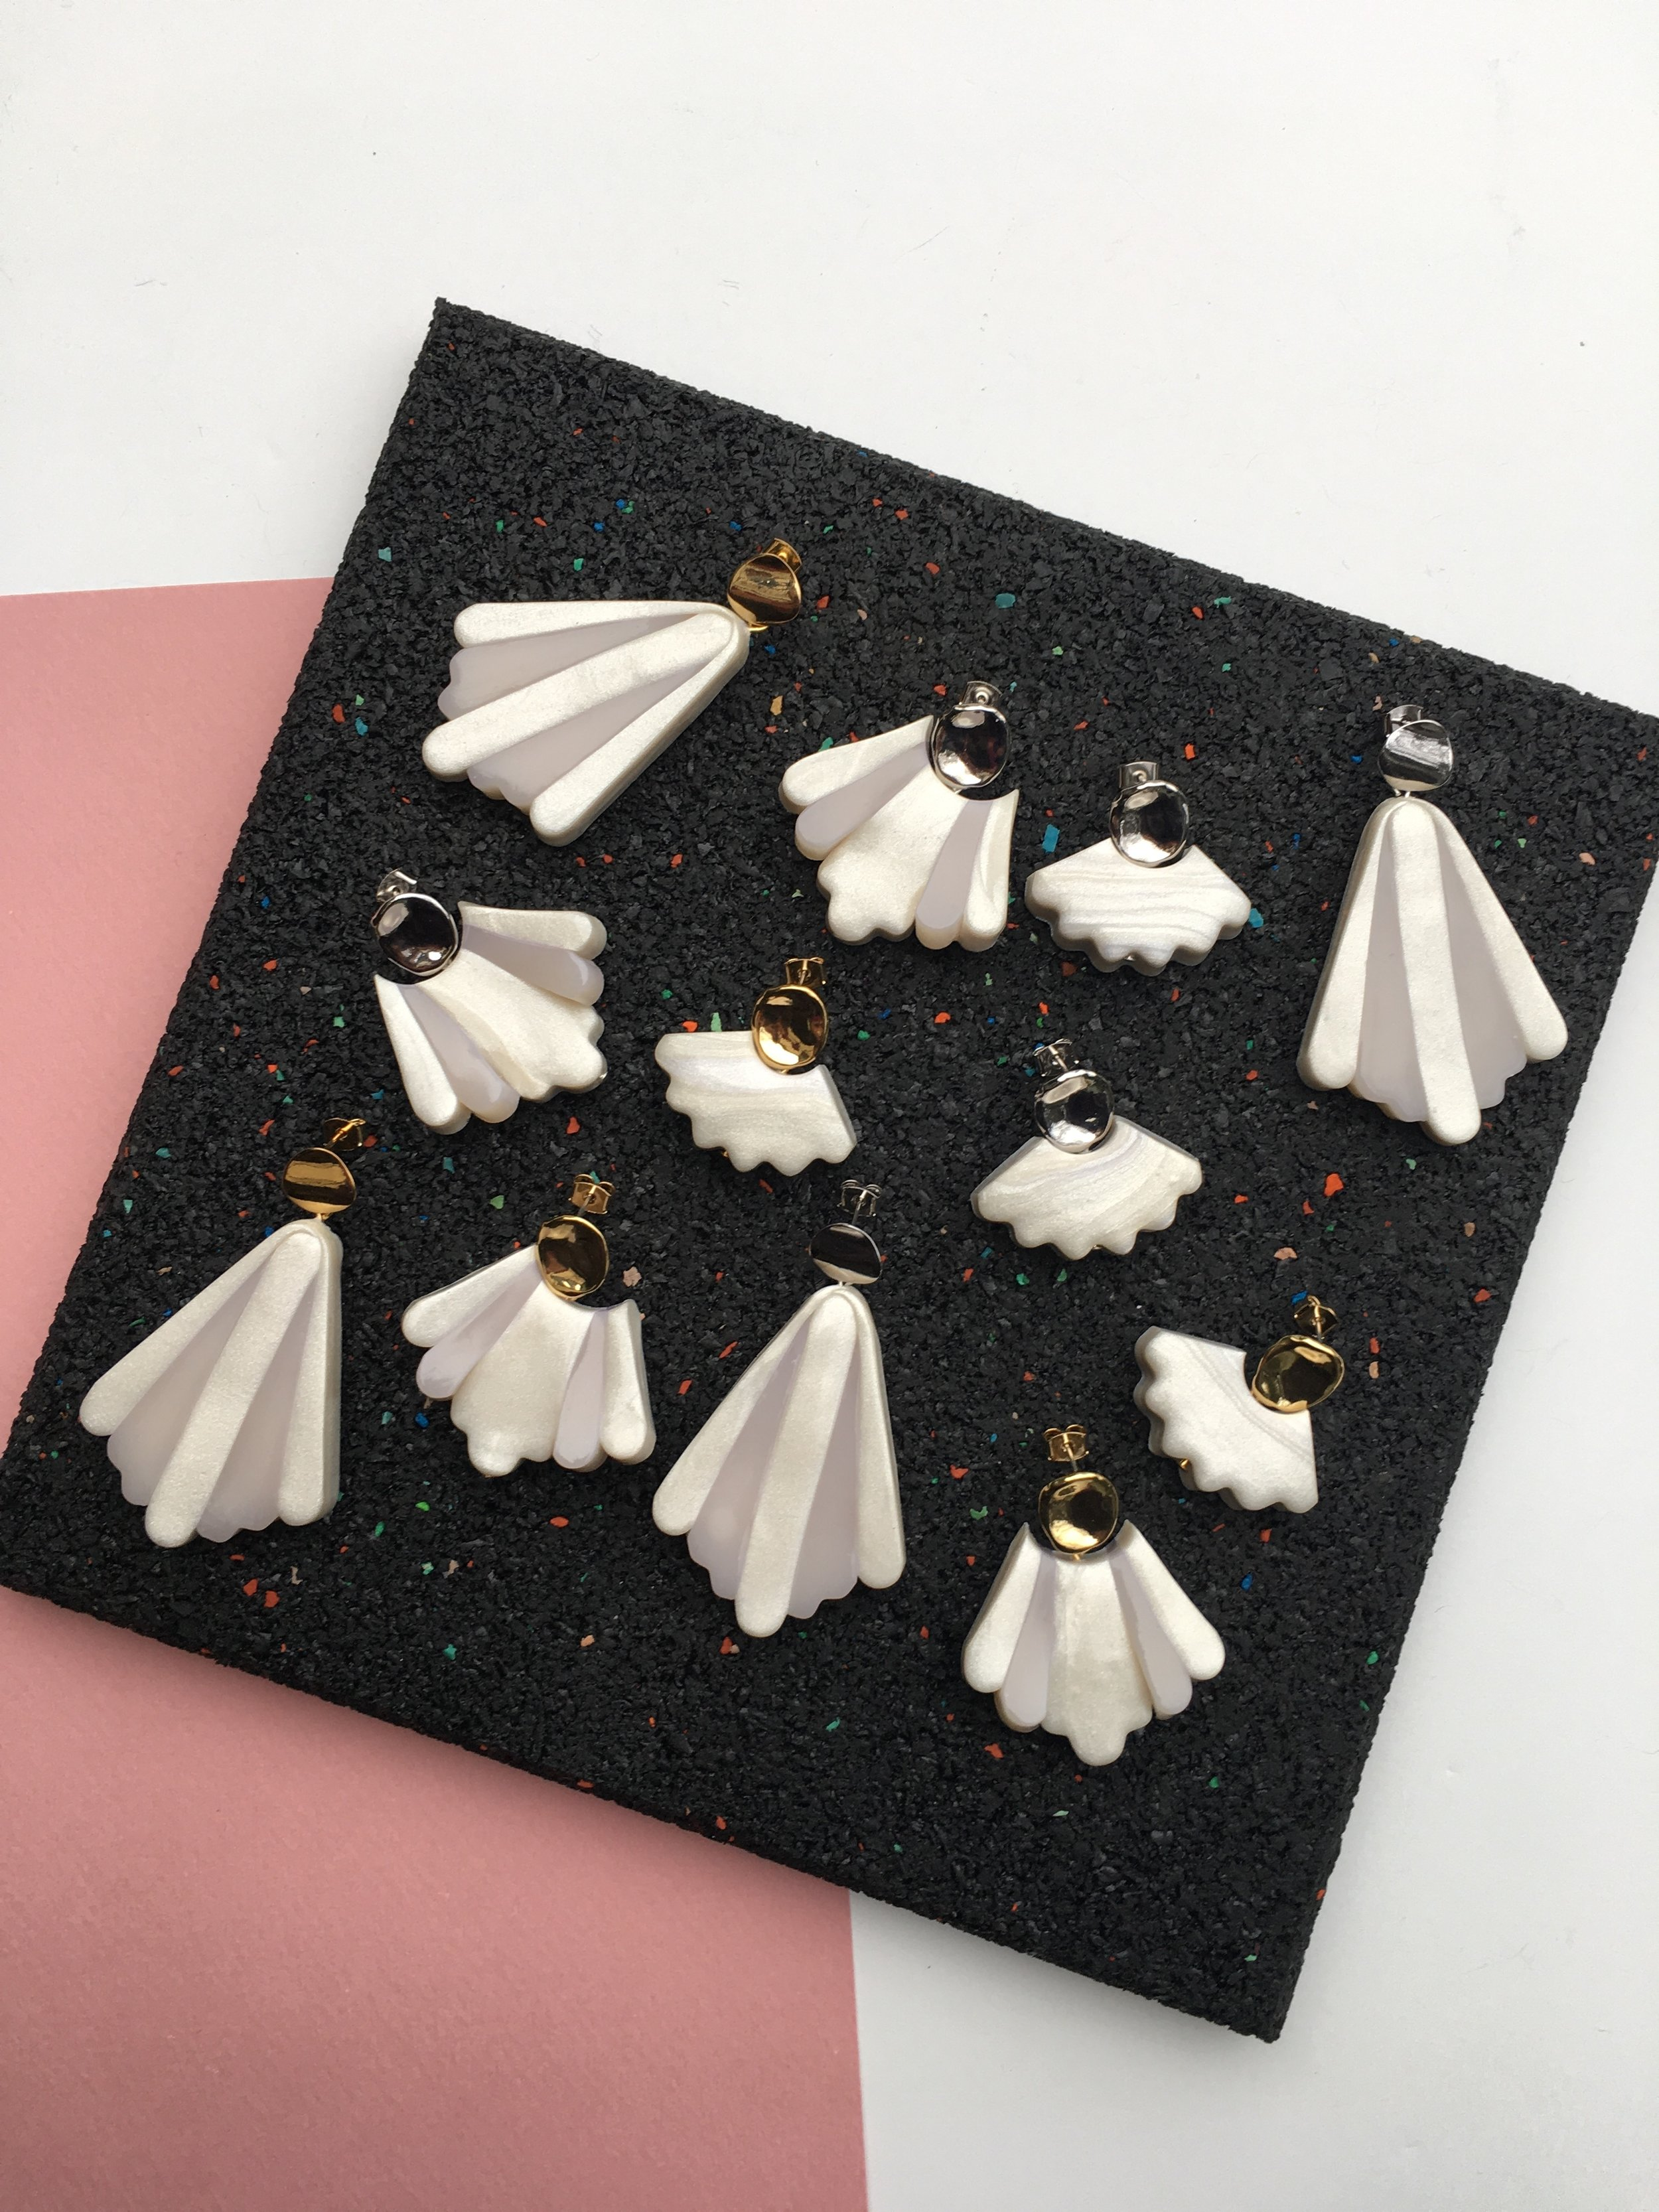 '…I'm thrilled about them. Thanks for the earrings and the care…' - - Amande (Bought the silver Large Art Deco earrings amongst others, France)